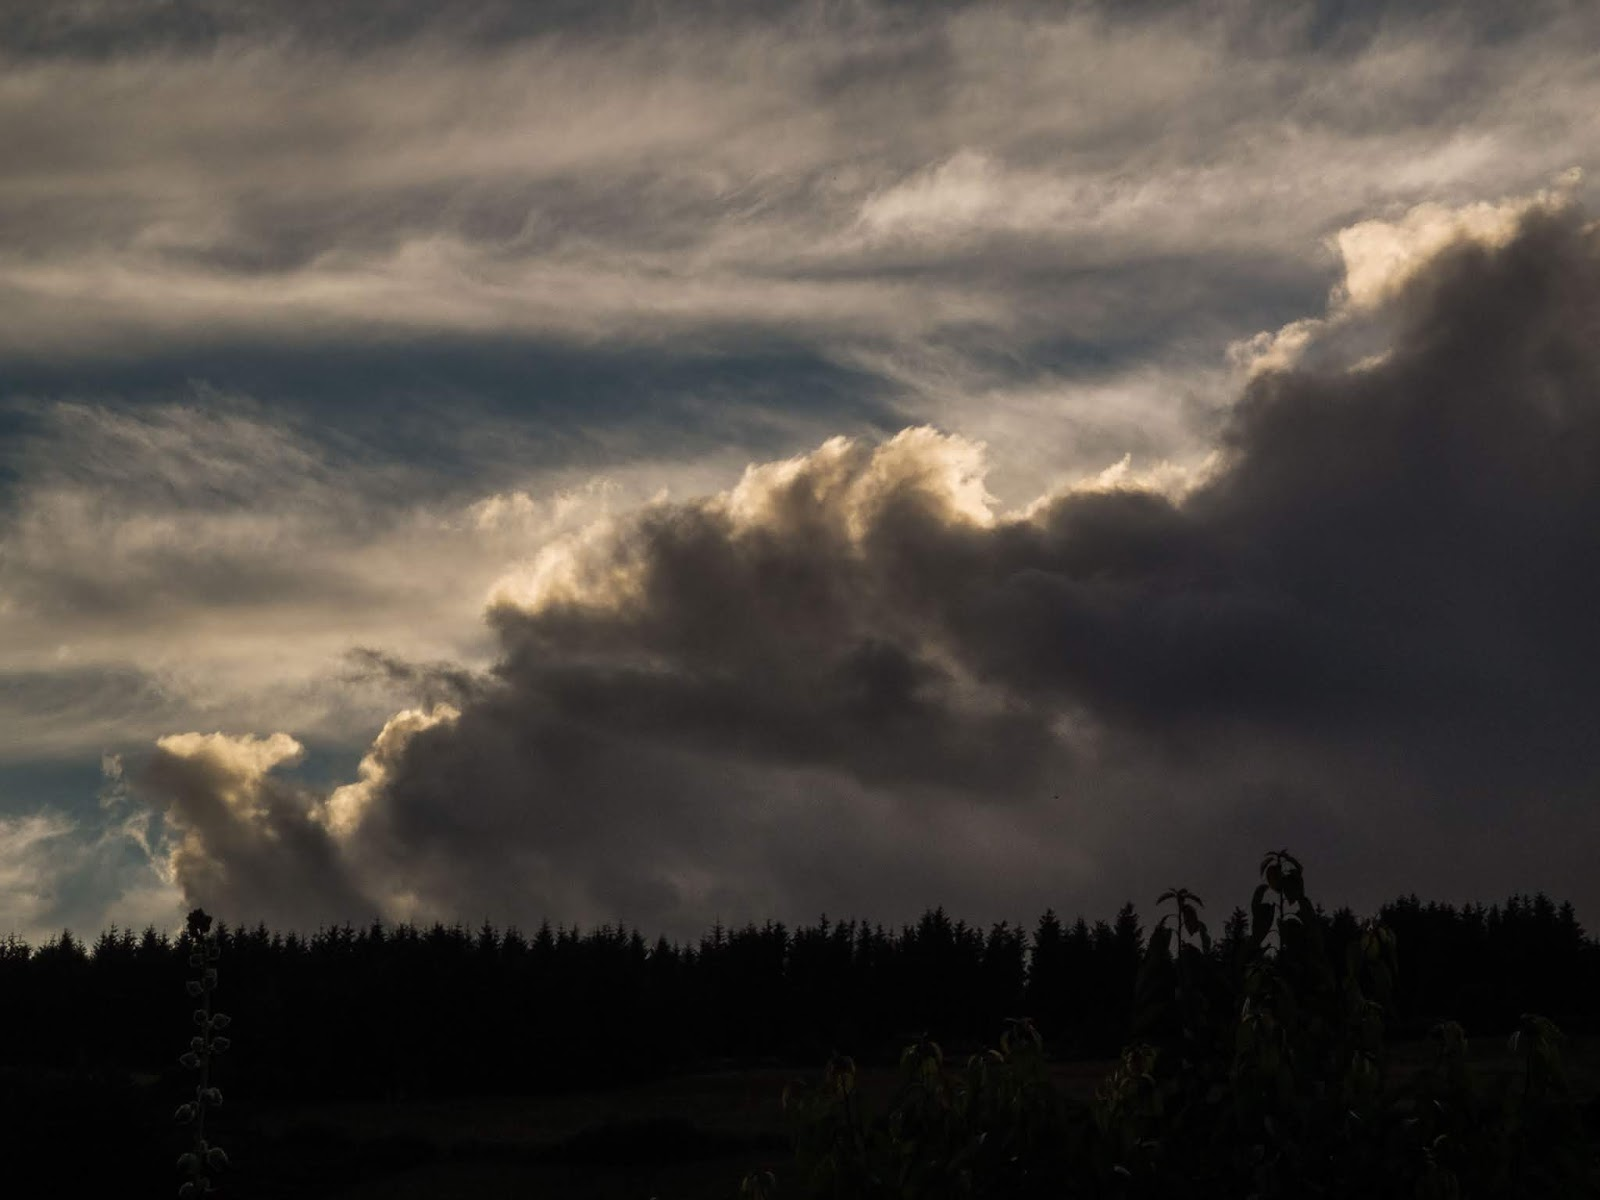 Big, wispy and grey toned sunset cloud over a forestry in the Boggeragh Mountains, Co.Cork.